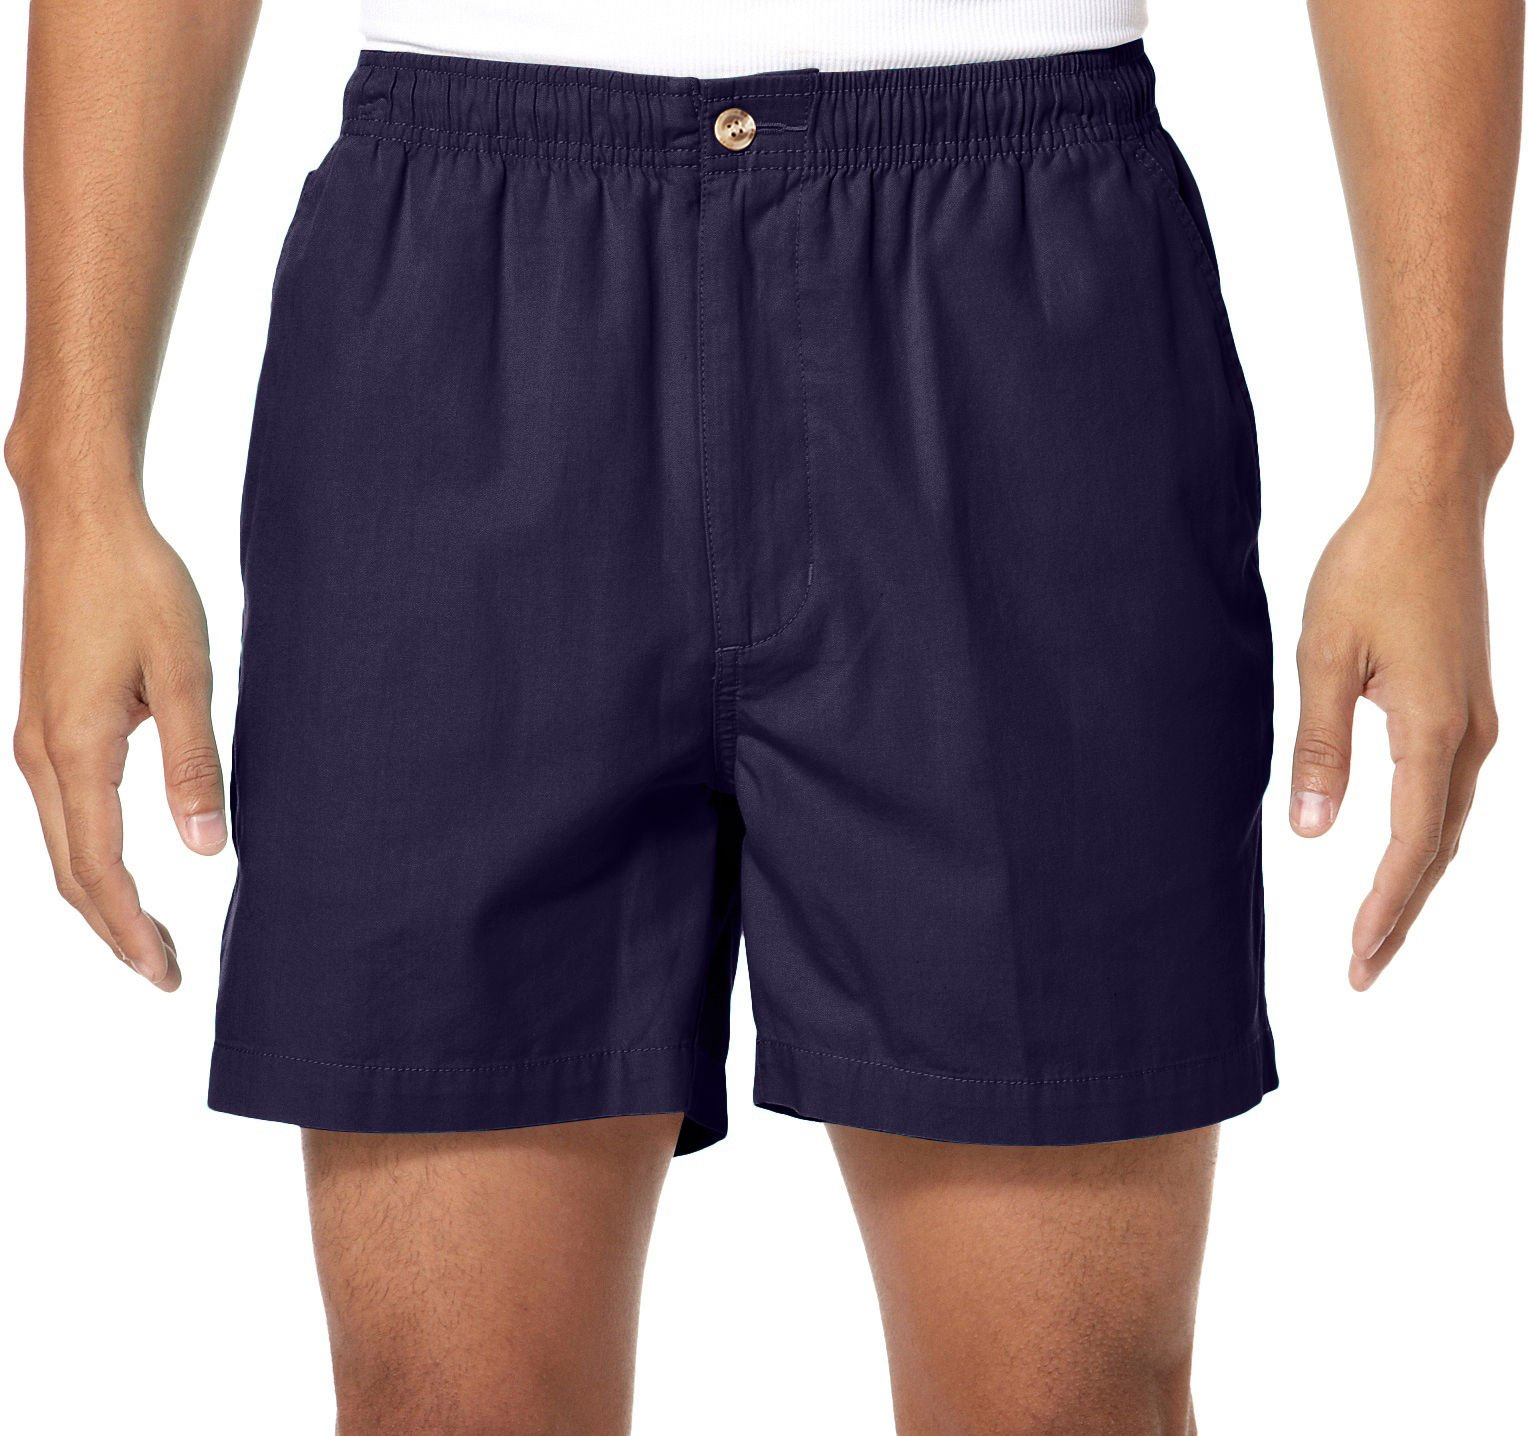 Windham Pointe Mens Solid 7'' Elastic Waist Shorts X-Large Peacoat Navy Blue